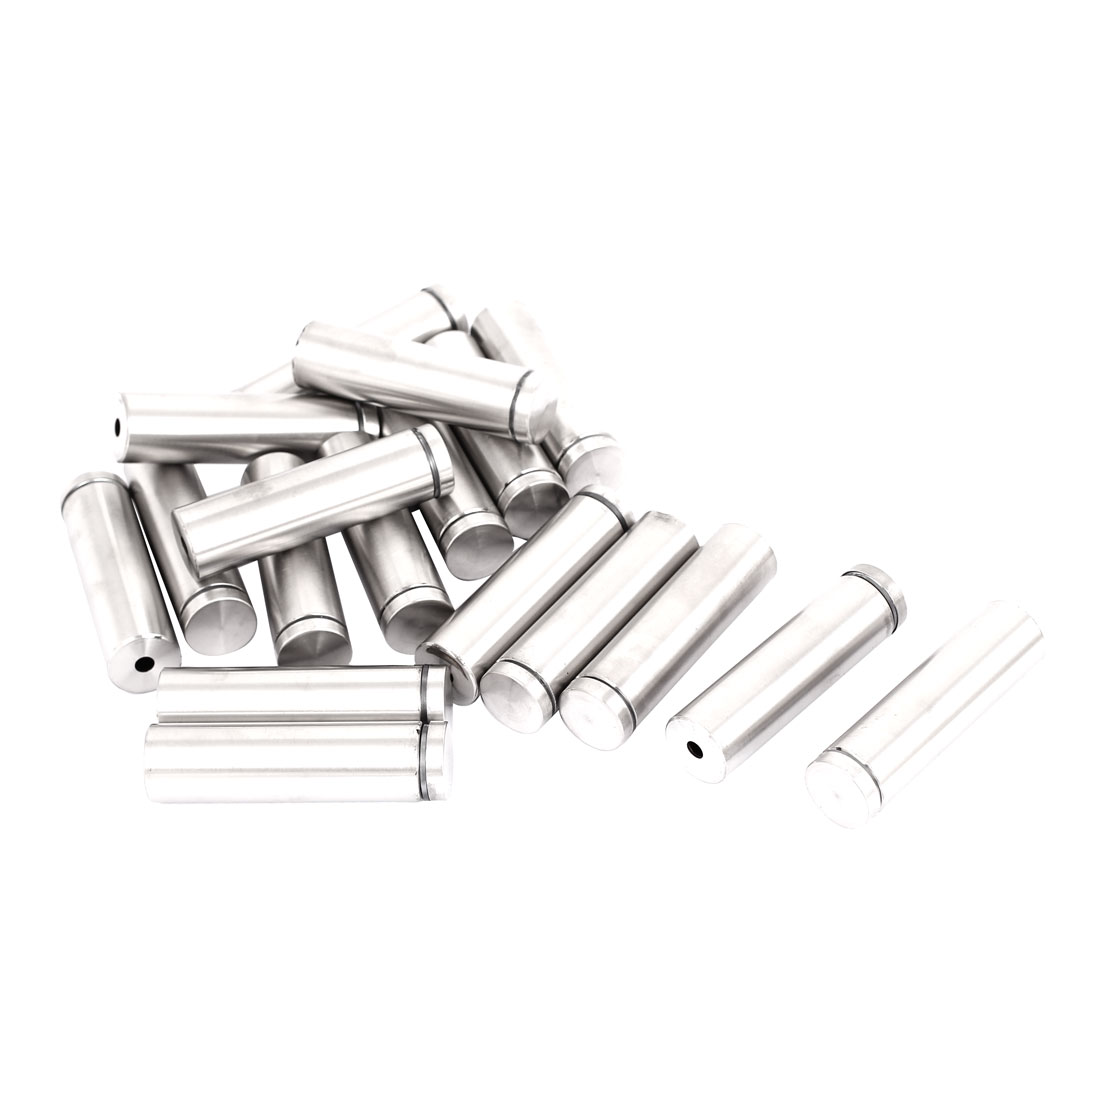 19mm x 70mm Stainless Steel Advertising Frameless Glass Standoff Pins 18pcs